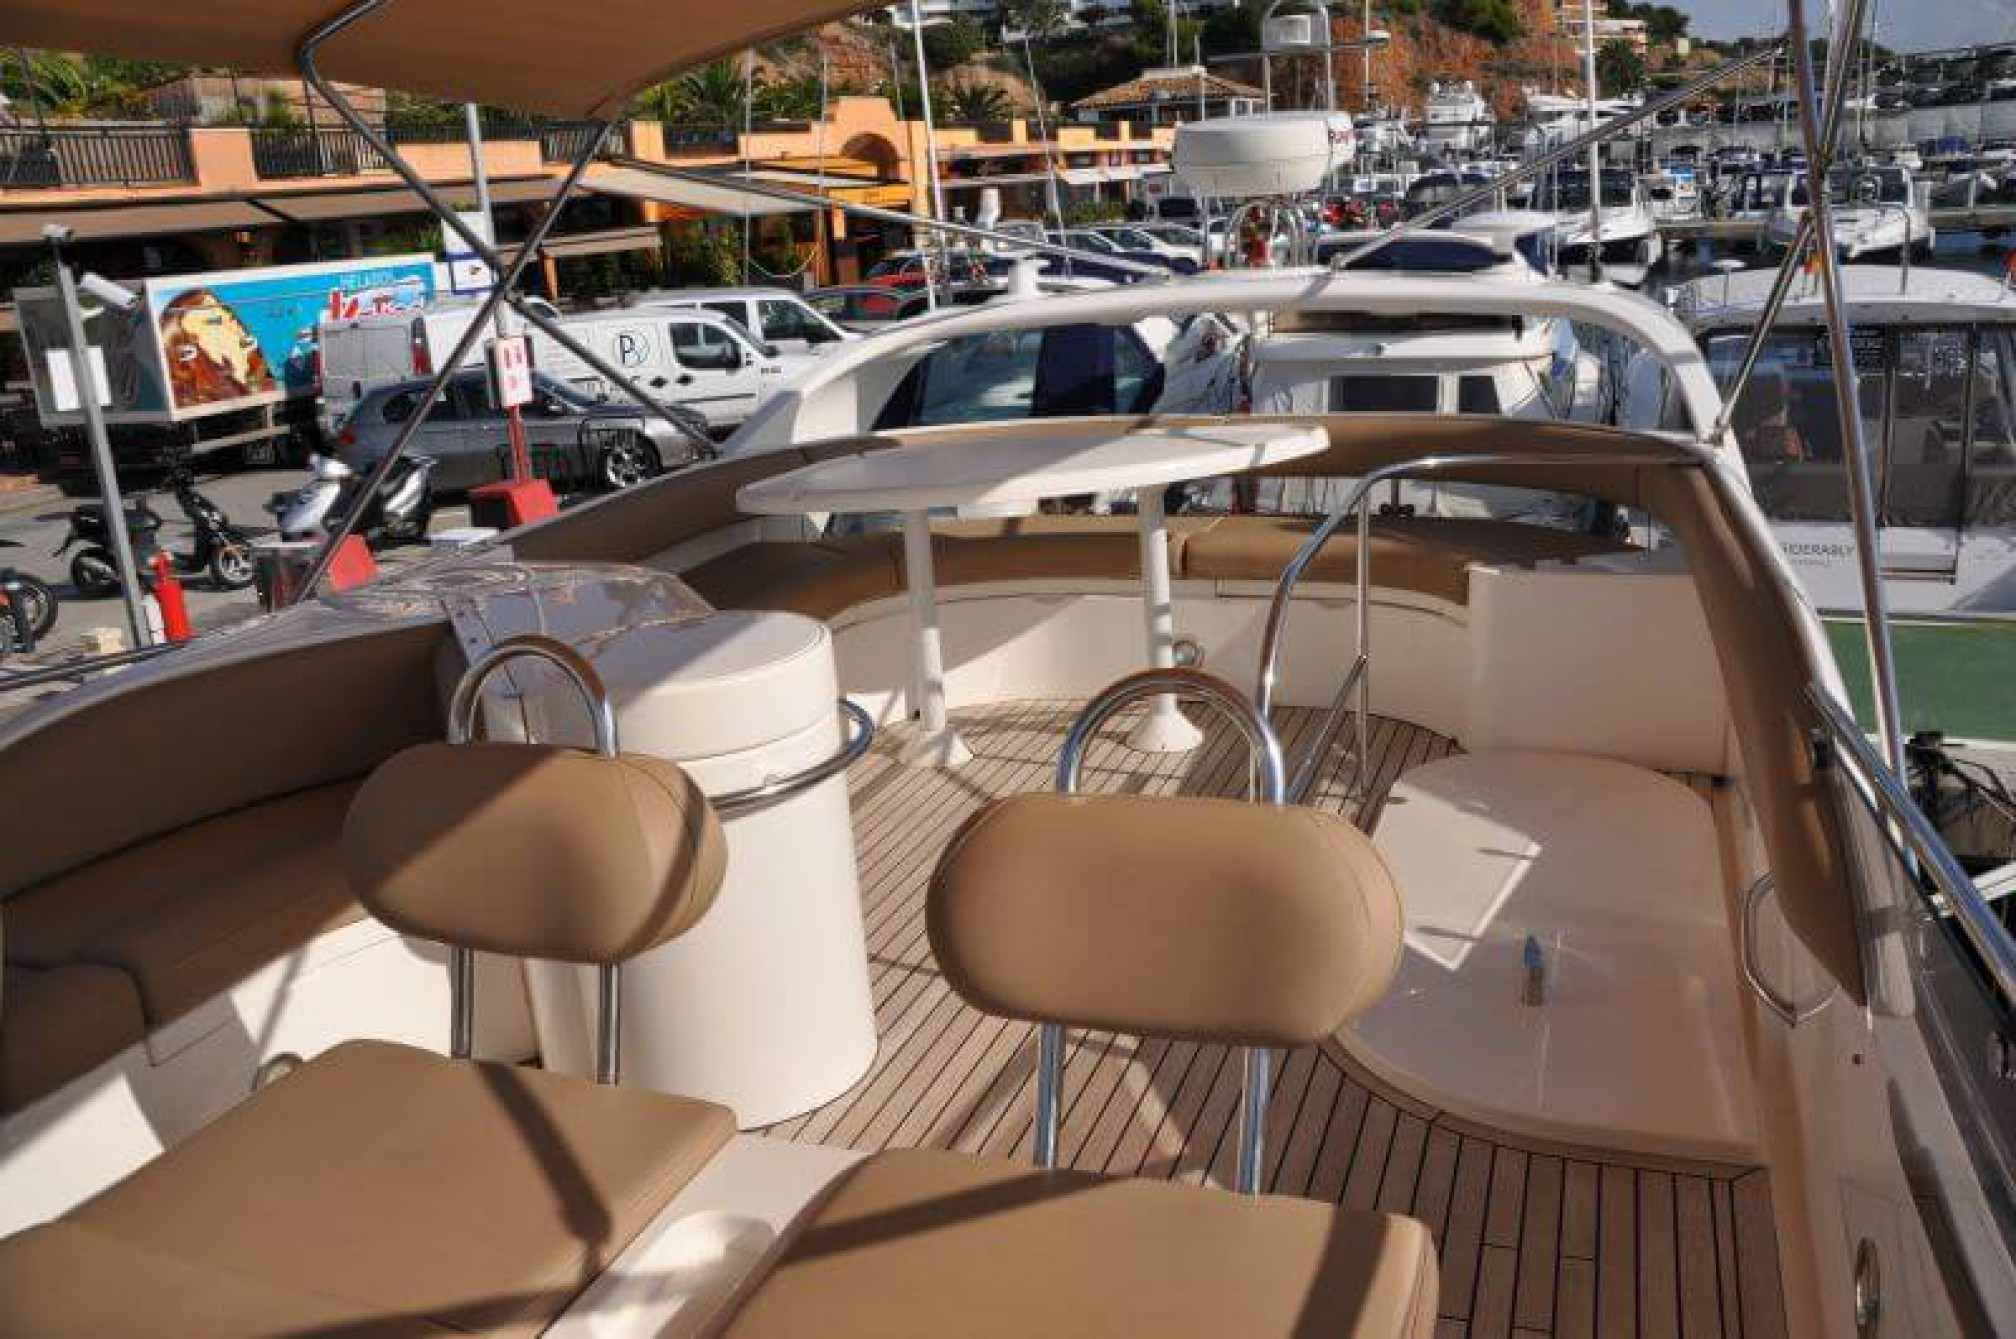 Yate de alquiler Fairline Phantom 50 flybridge